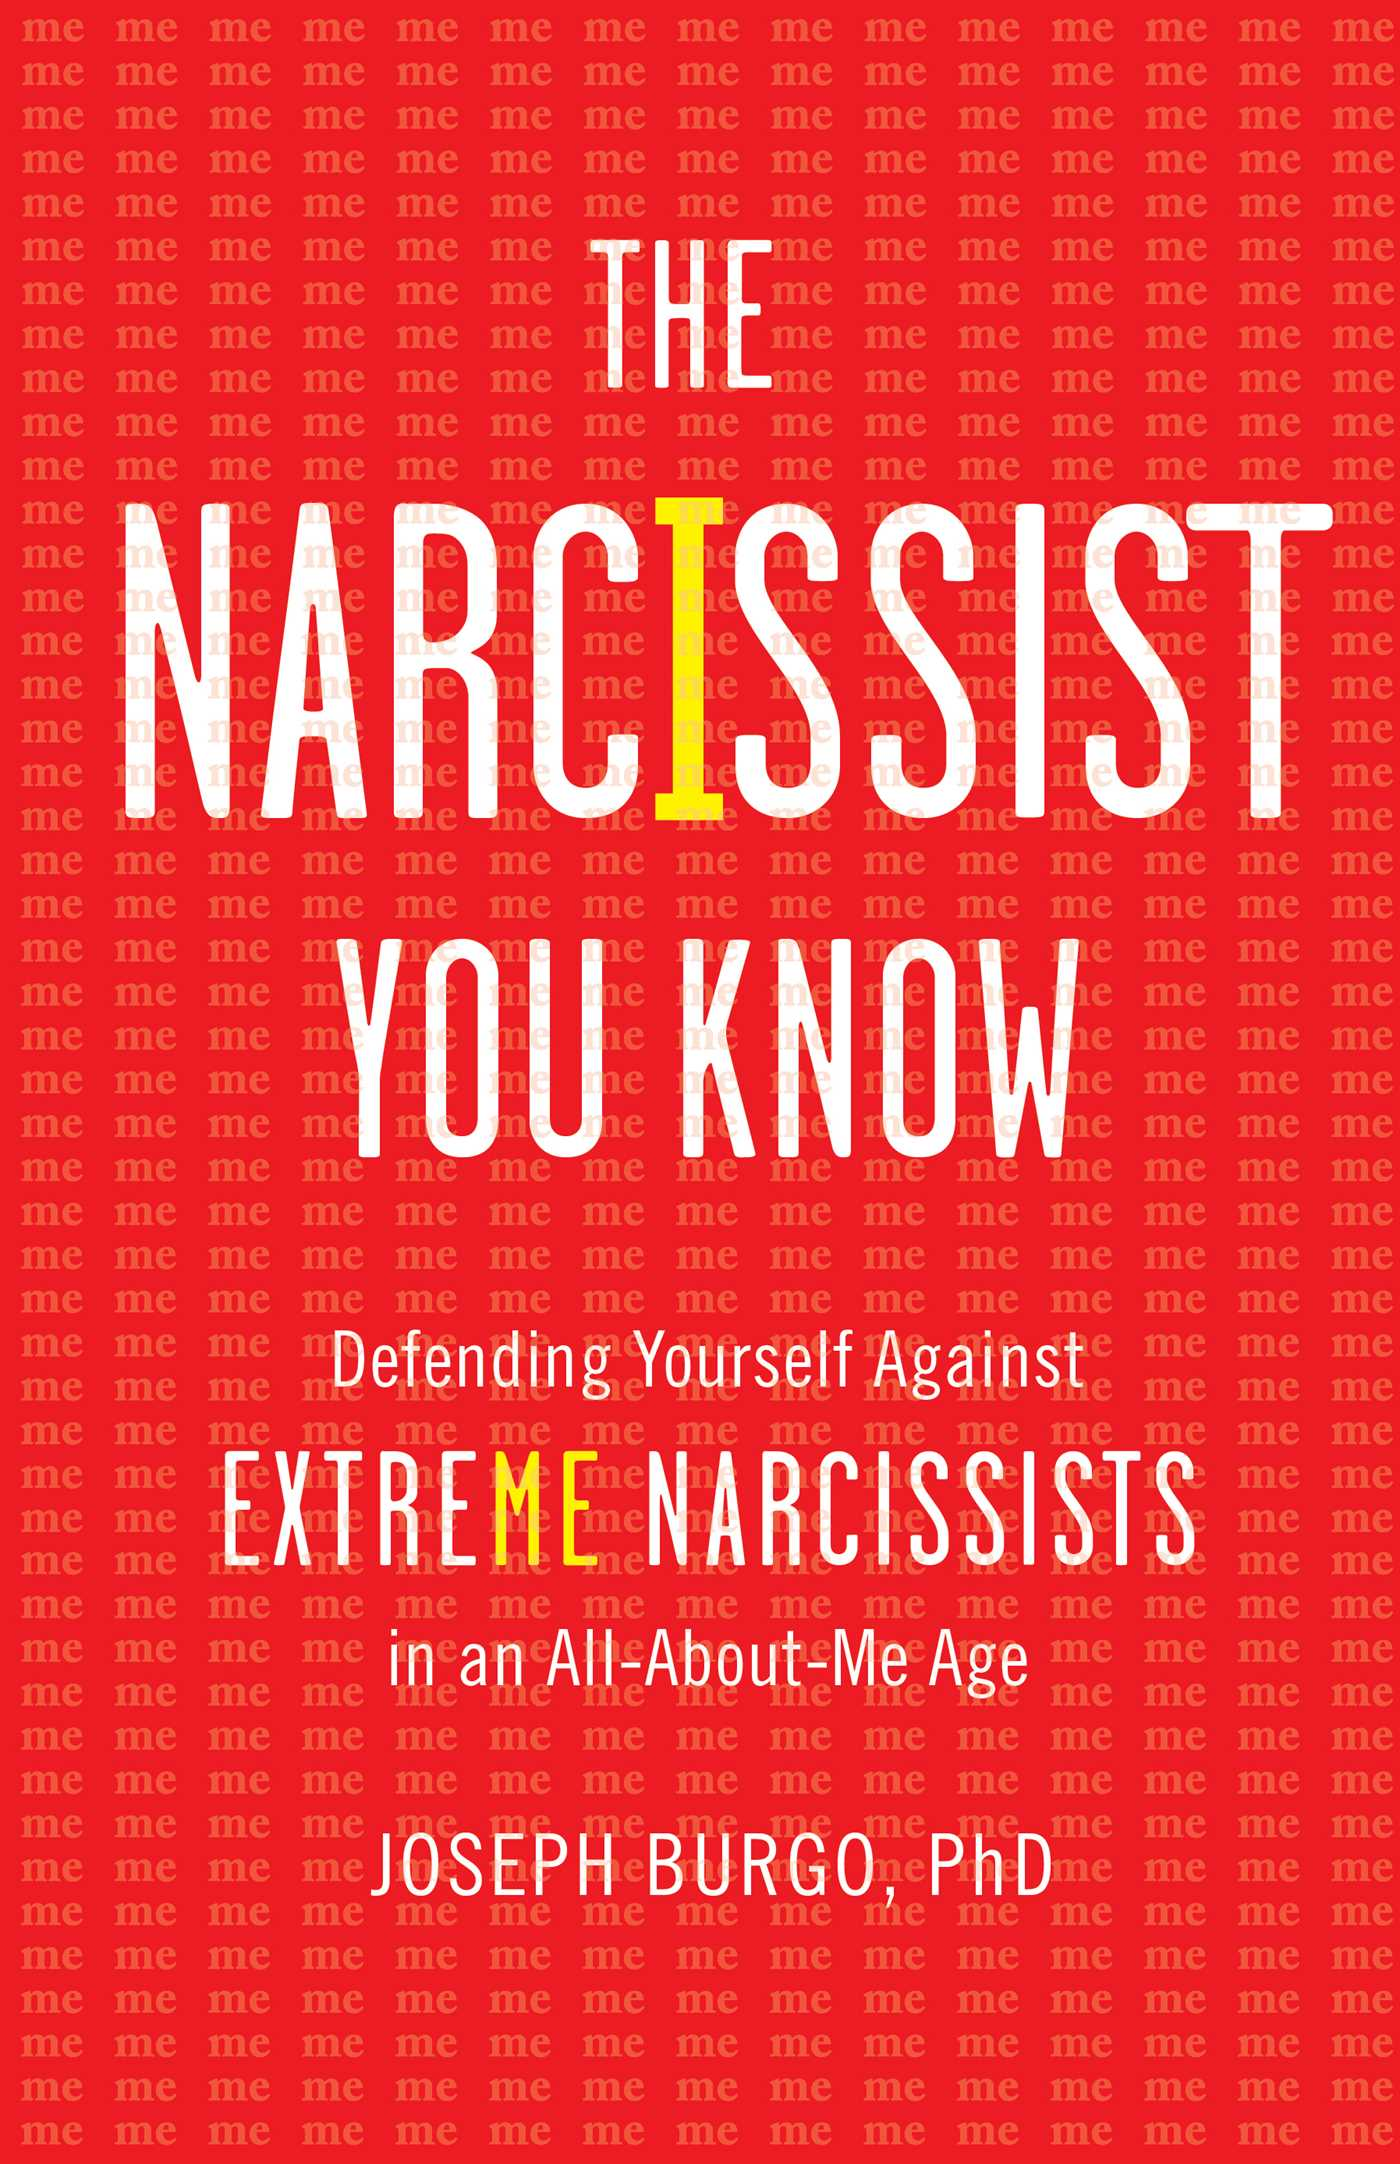 The Narcissist You Know | Book by Joseph Burgo | Official ...